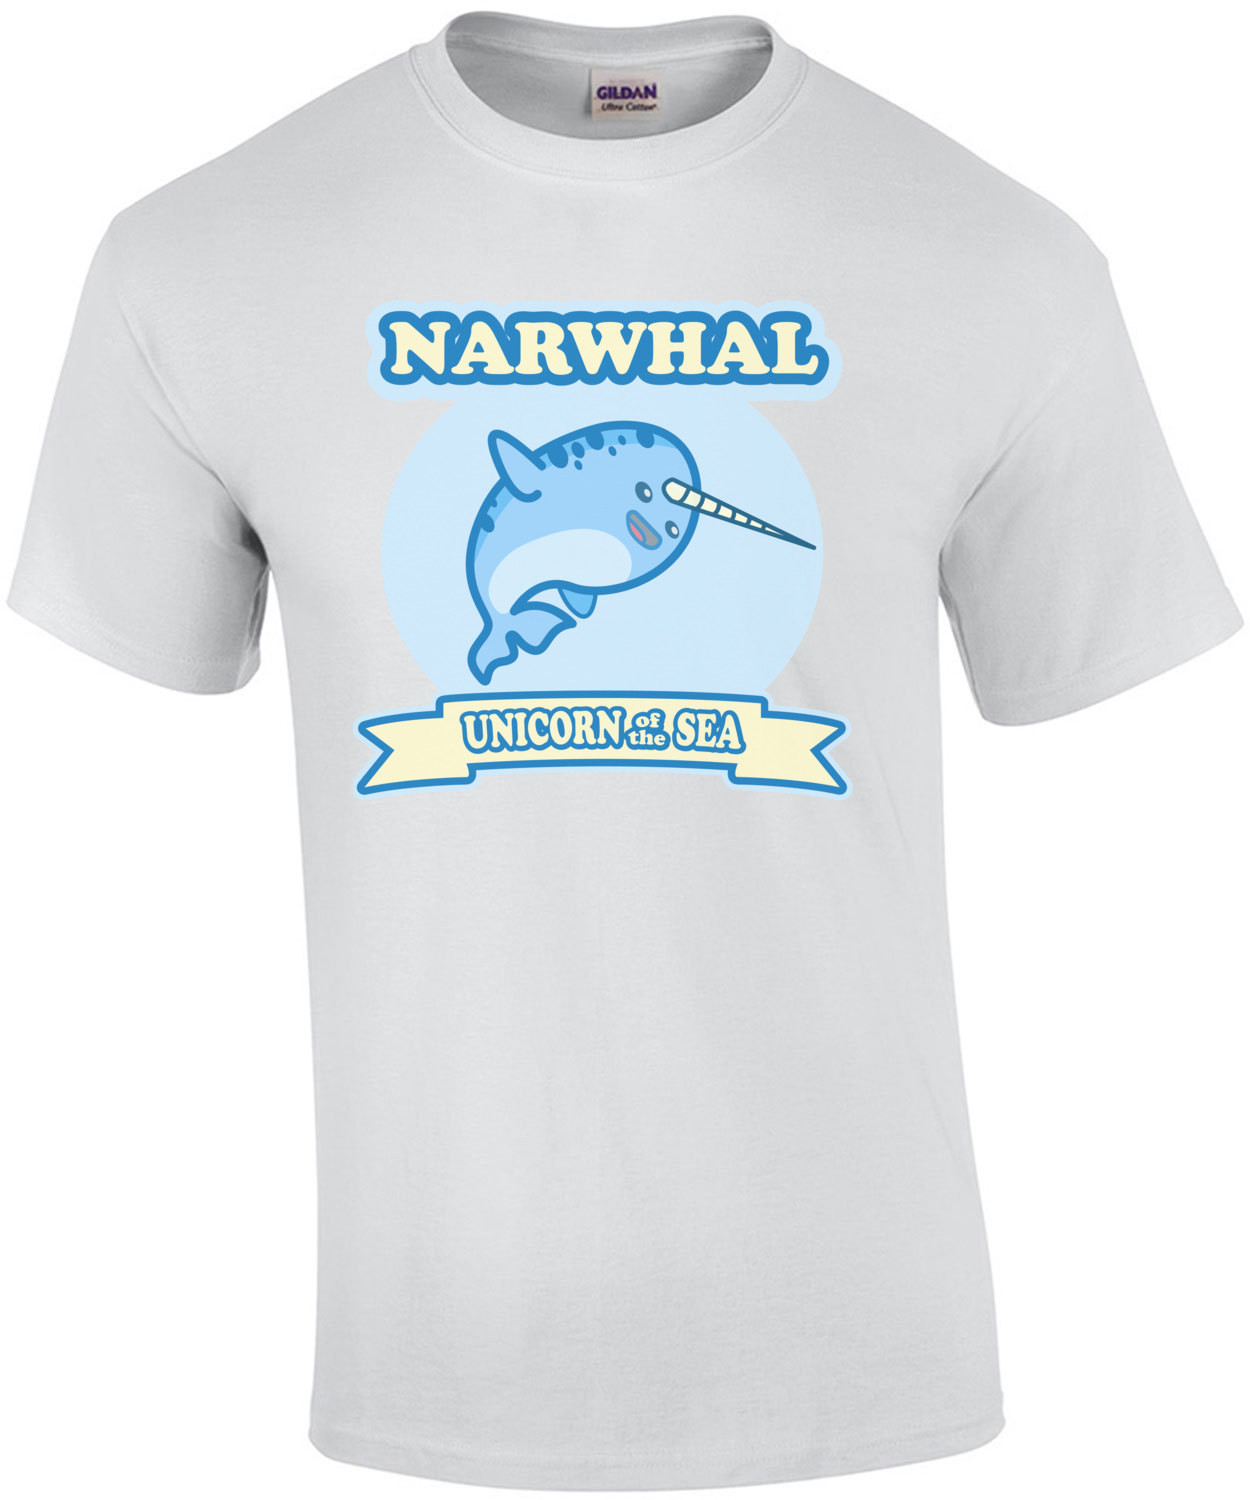 Narwhal Unicorn Of The Sea 2 - Funny T-Shirt